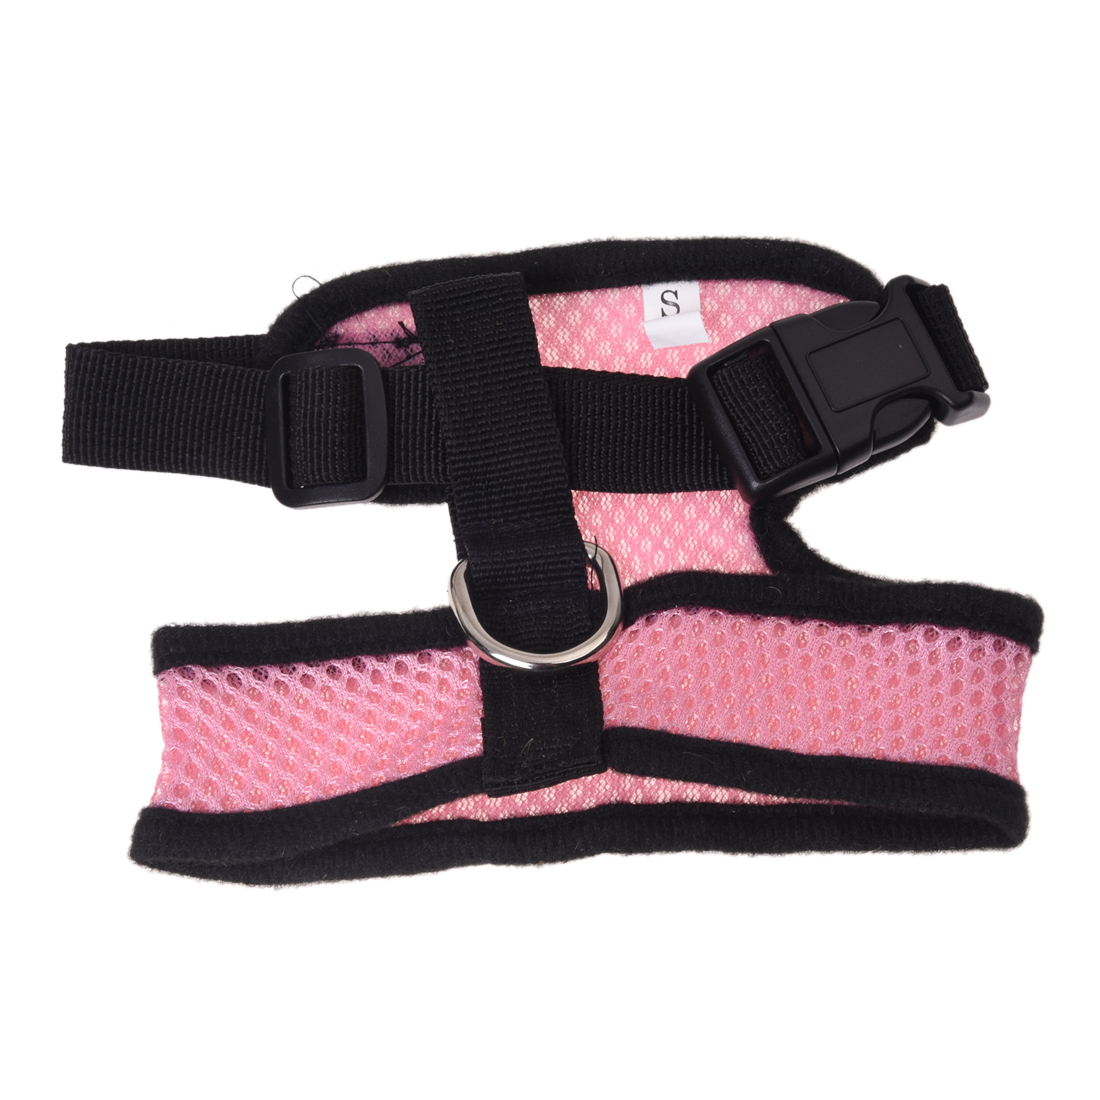 IALJ Top Harness vest leaves S Pink for cats dogs animals Pet